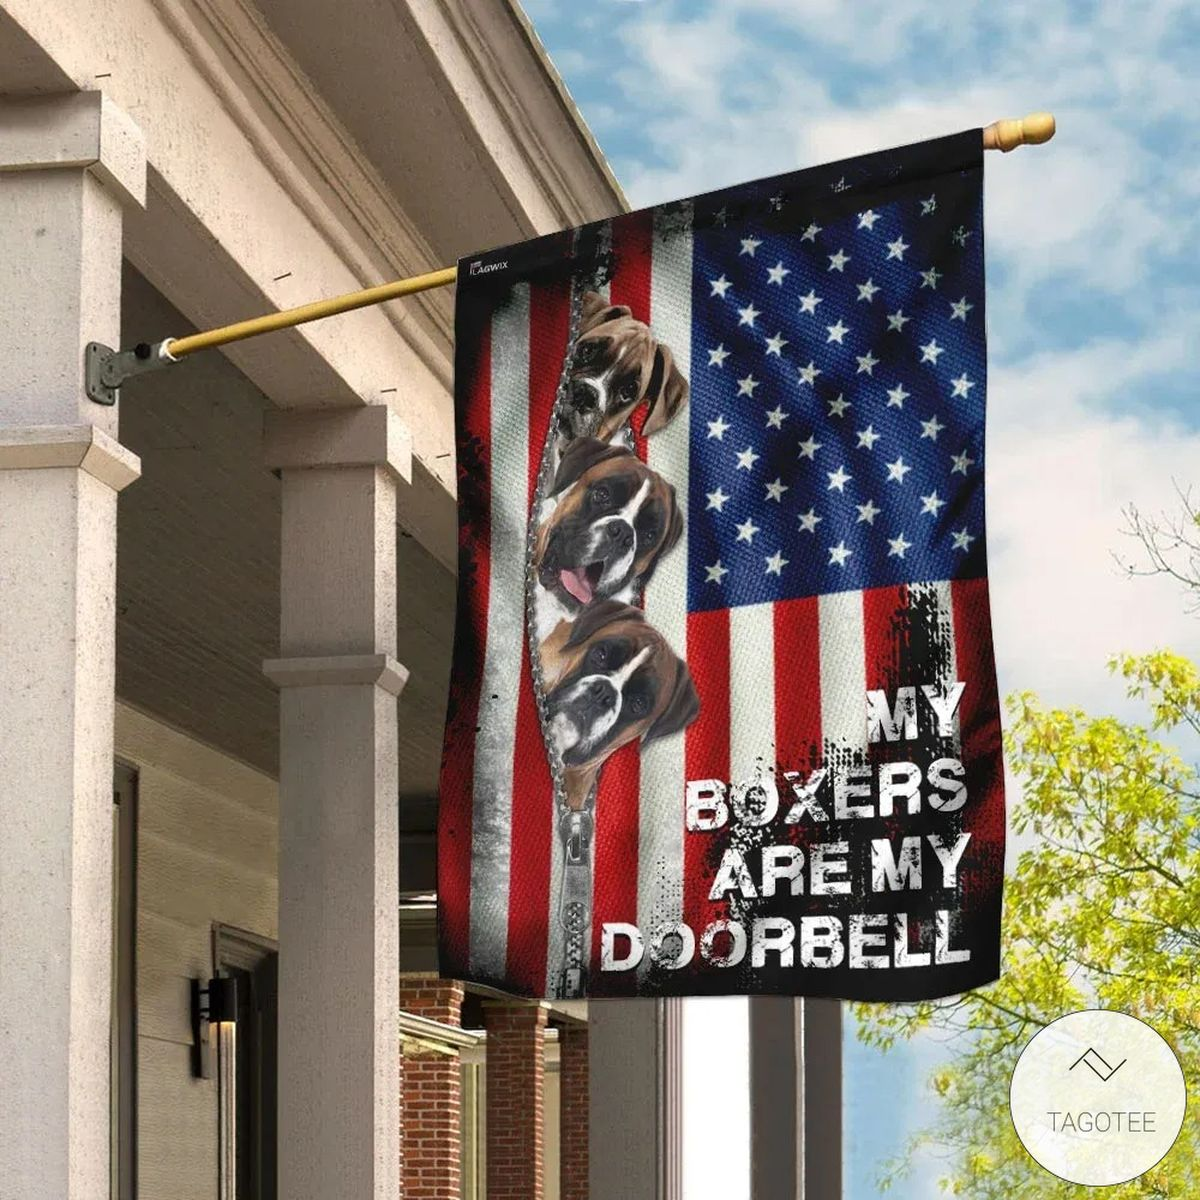 My Boxers Are My Doorbell Flag